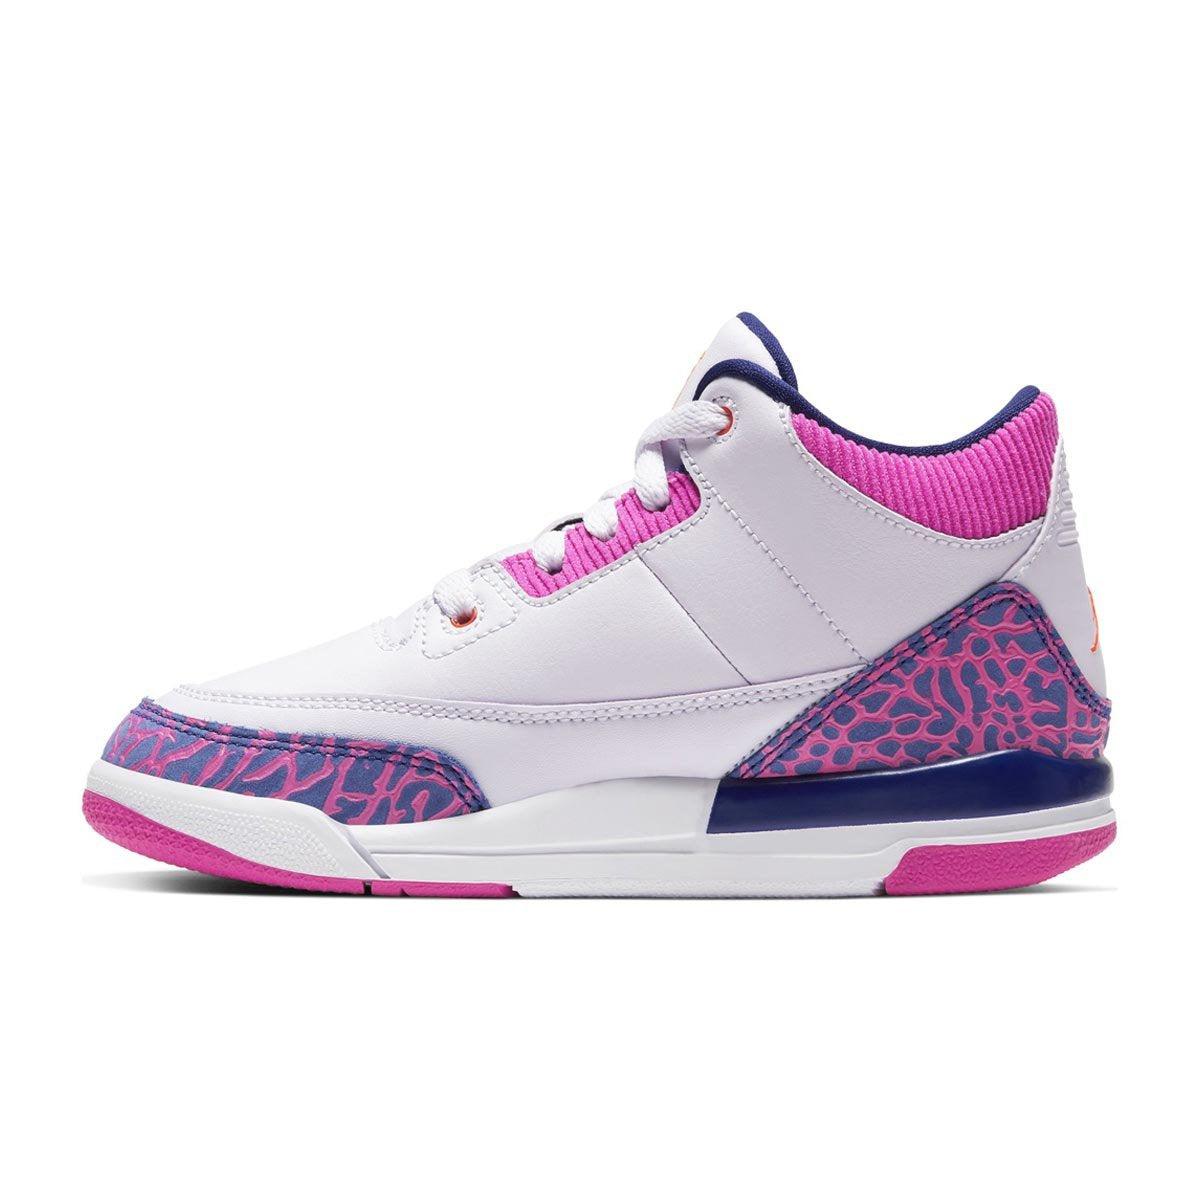 Little Kids Girls' Jordan 3 Retro (PS)